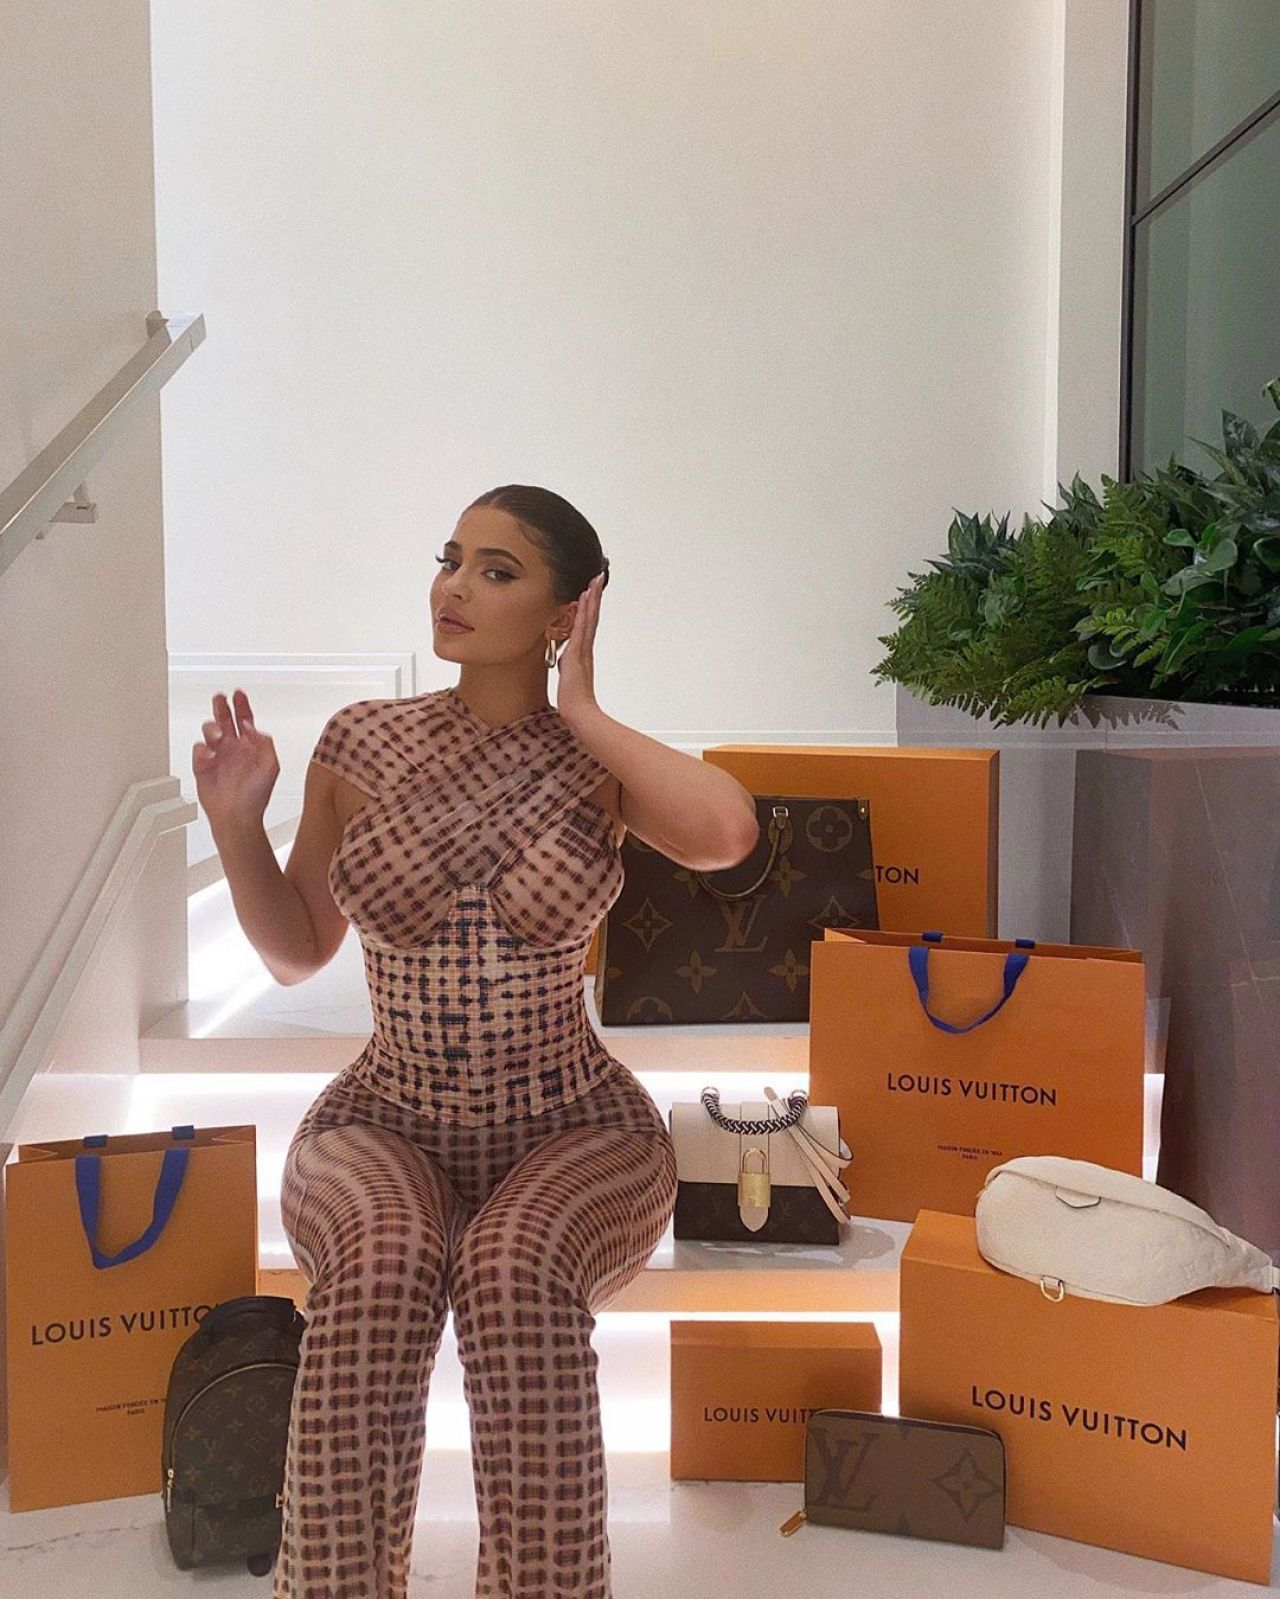 kylie-jenner-fashion-outfit-07-01-2020